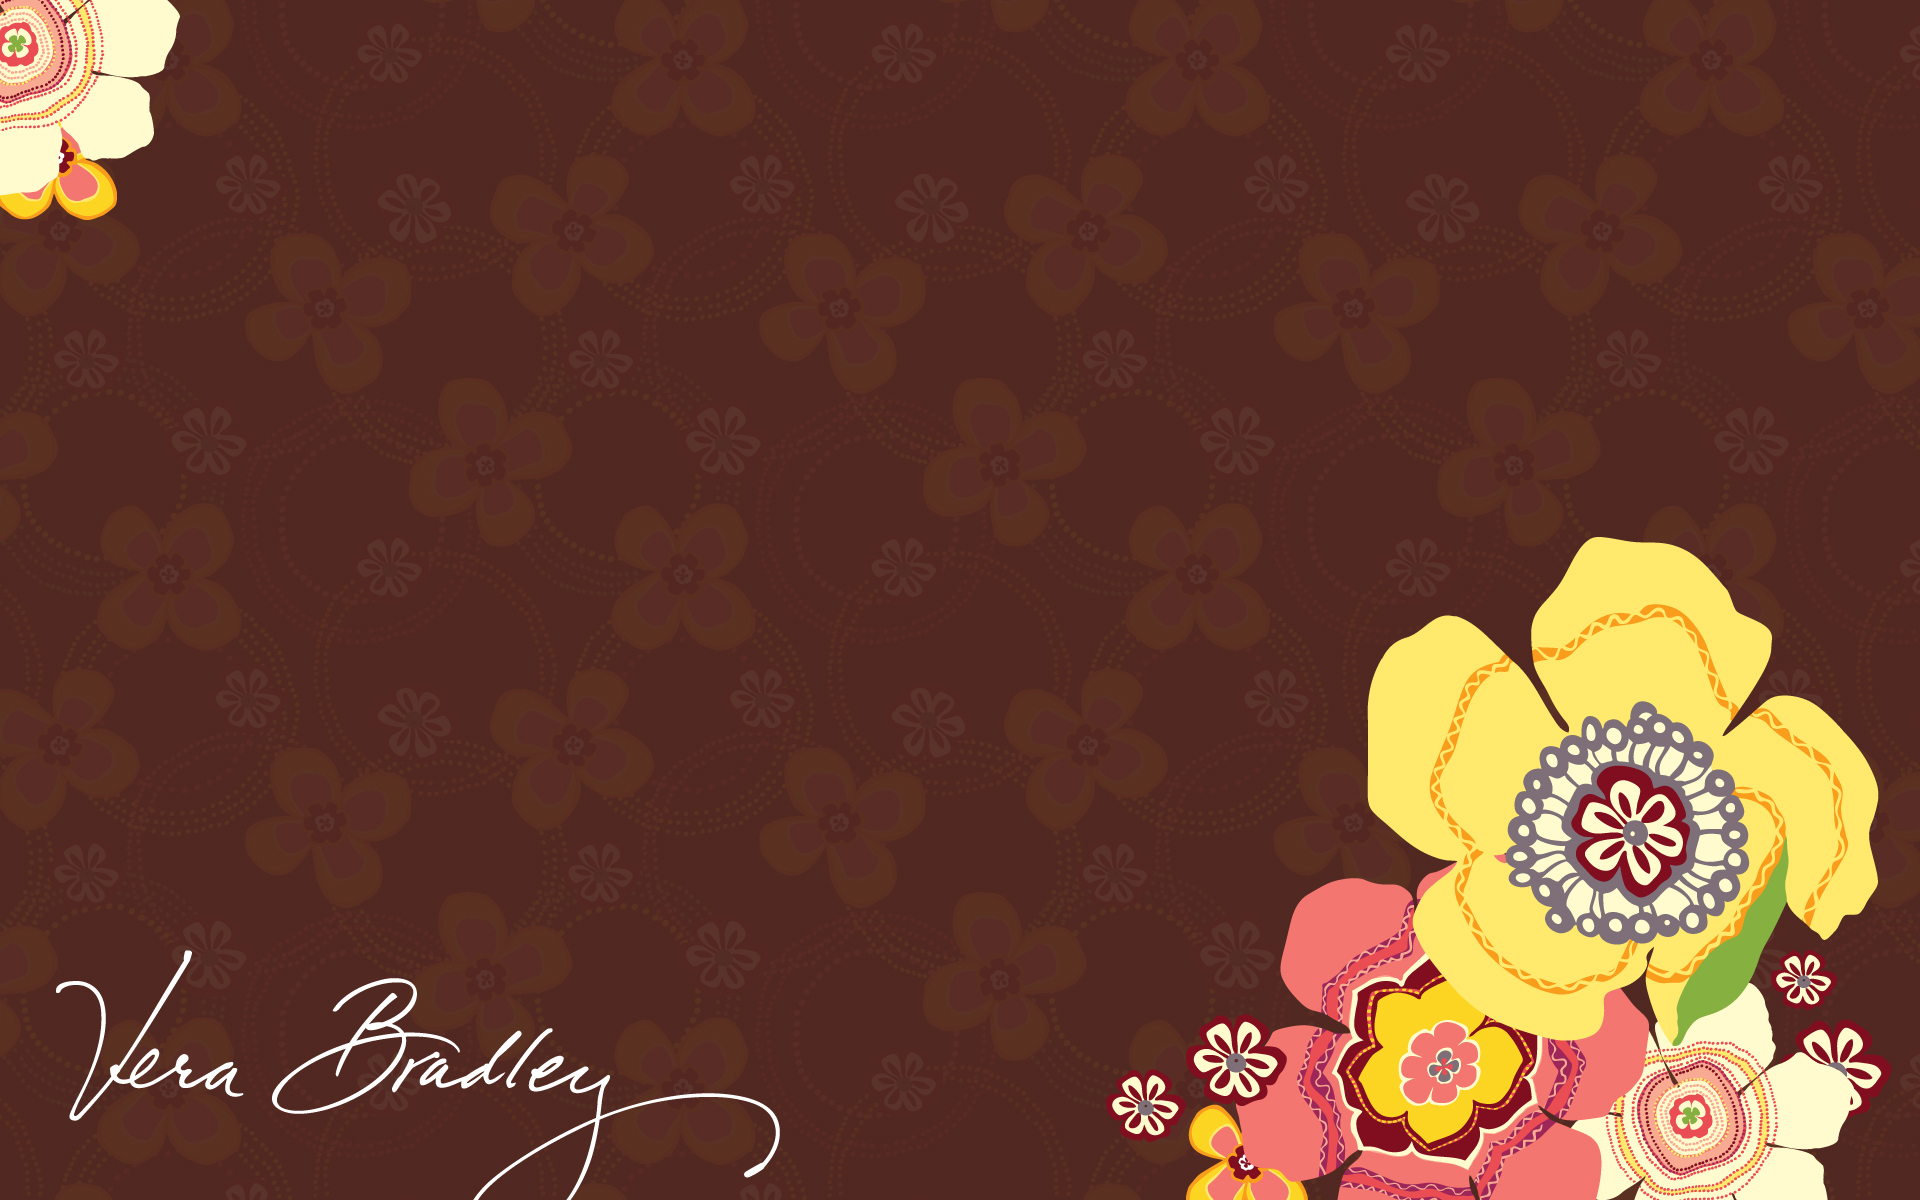 Vera Bradley images VB Wallpapers HD wallpaper and background photos ...